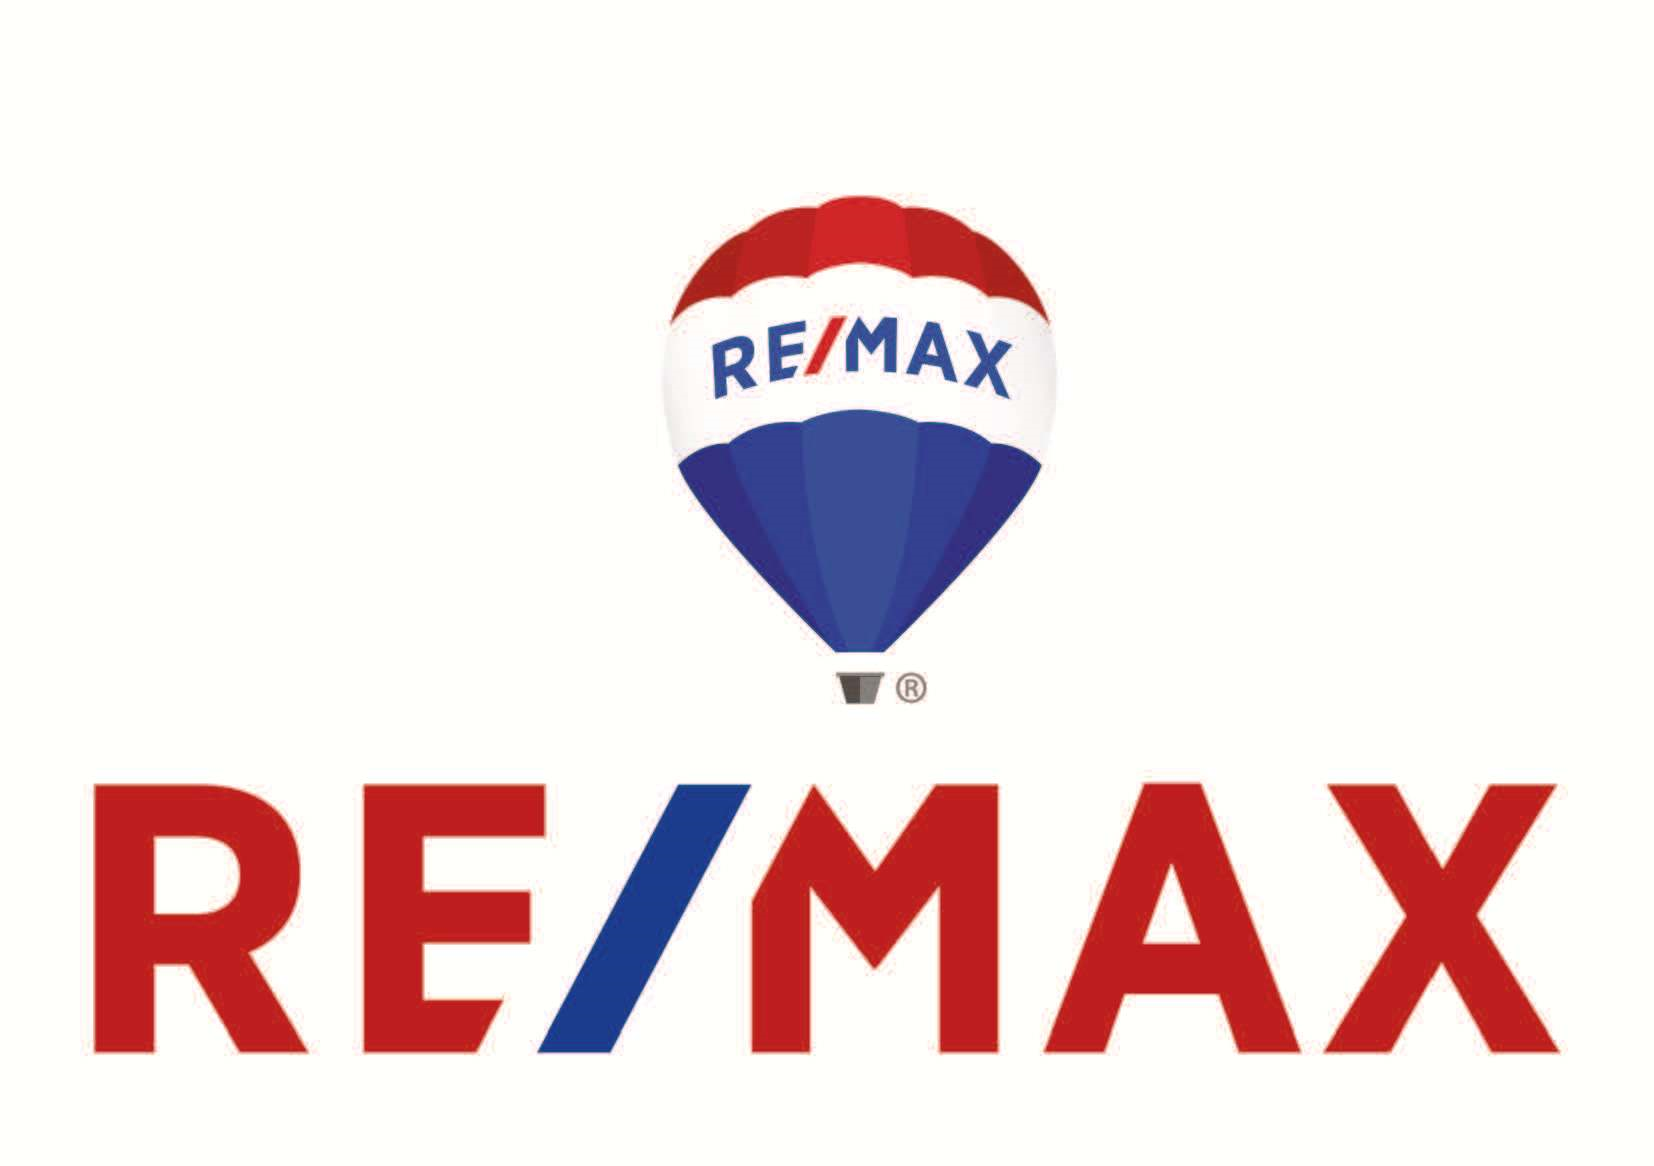 RE/MAX  Pinneberg - A.E.B. Immobilien GmbH & Co. KG in Pinneberg